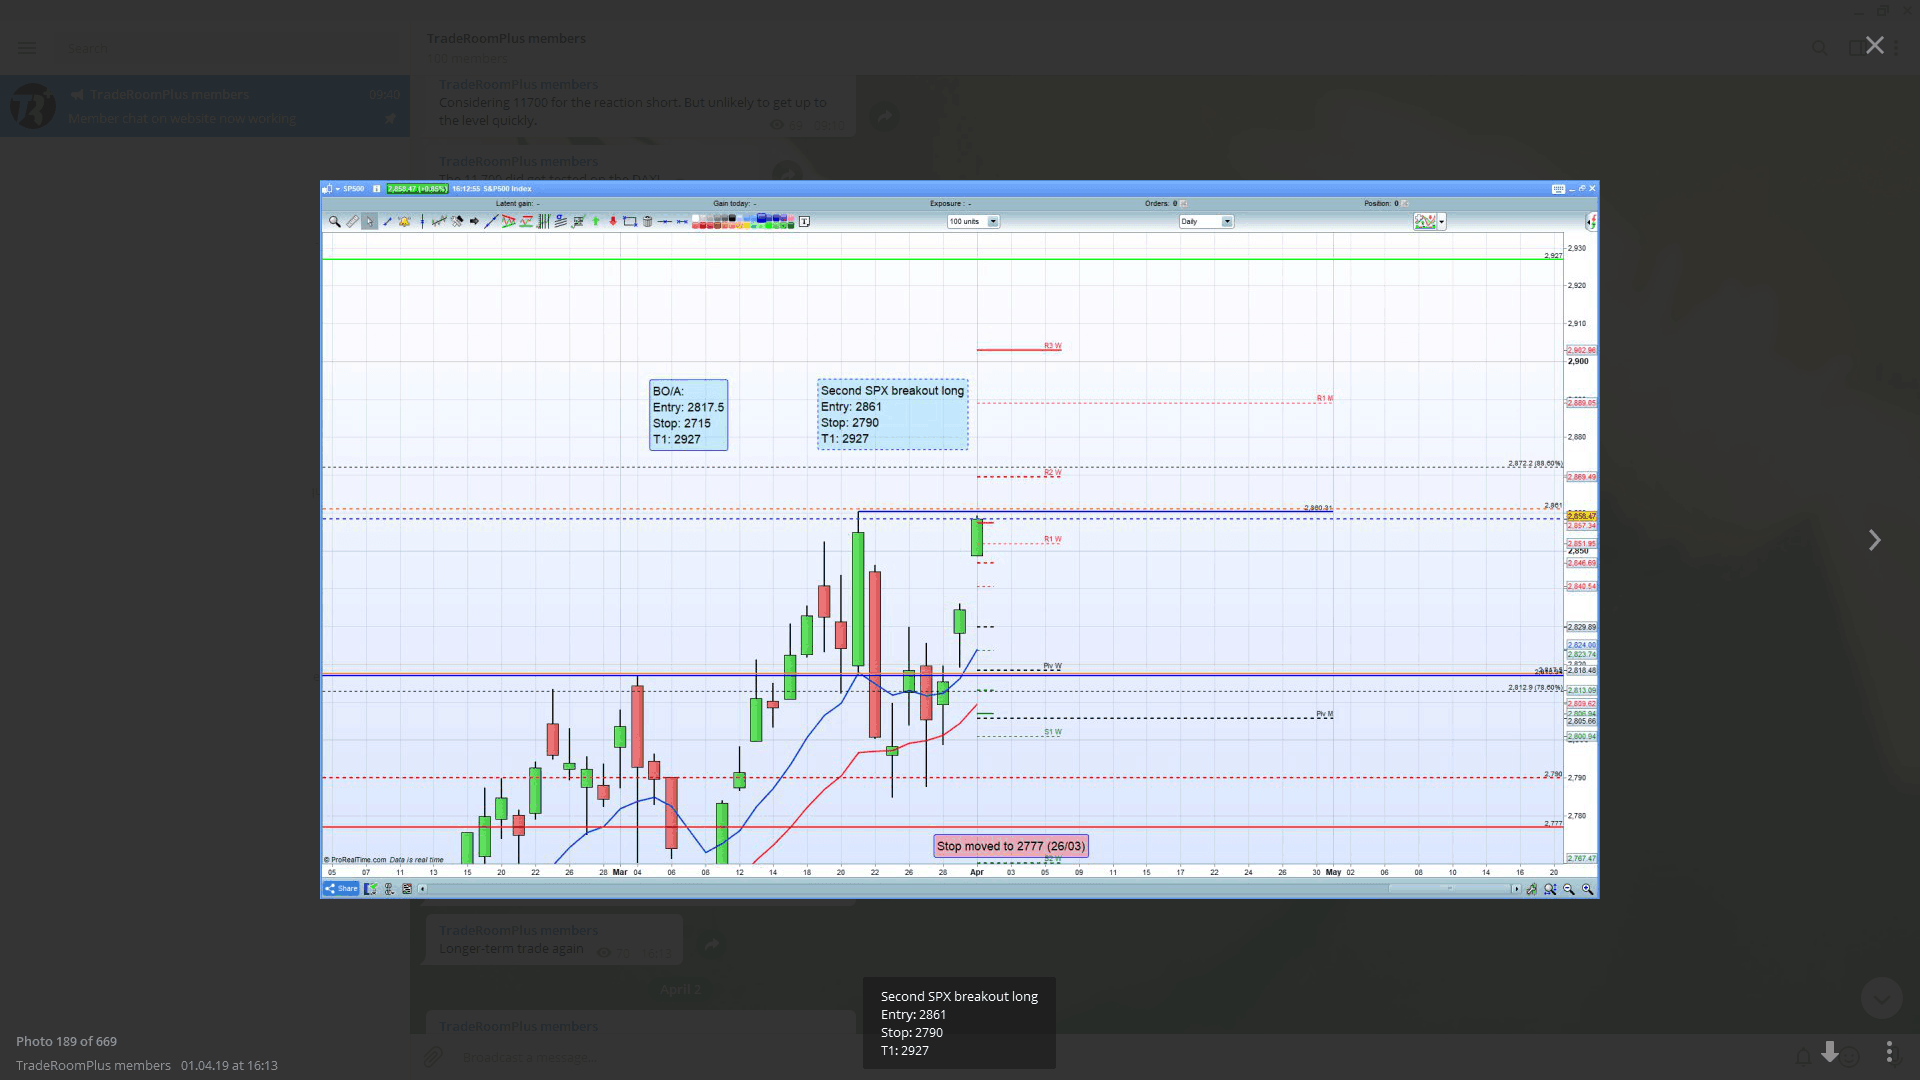 A screen shot of a trade swing trade signal sent by us.